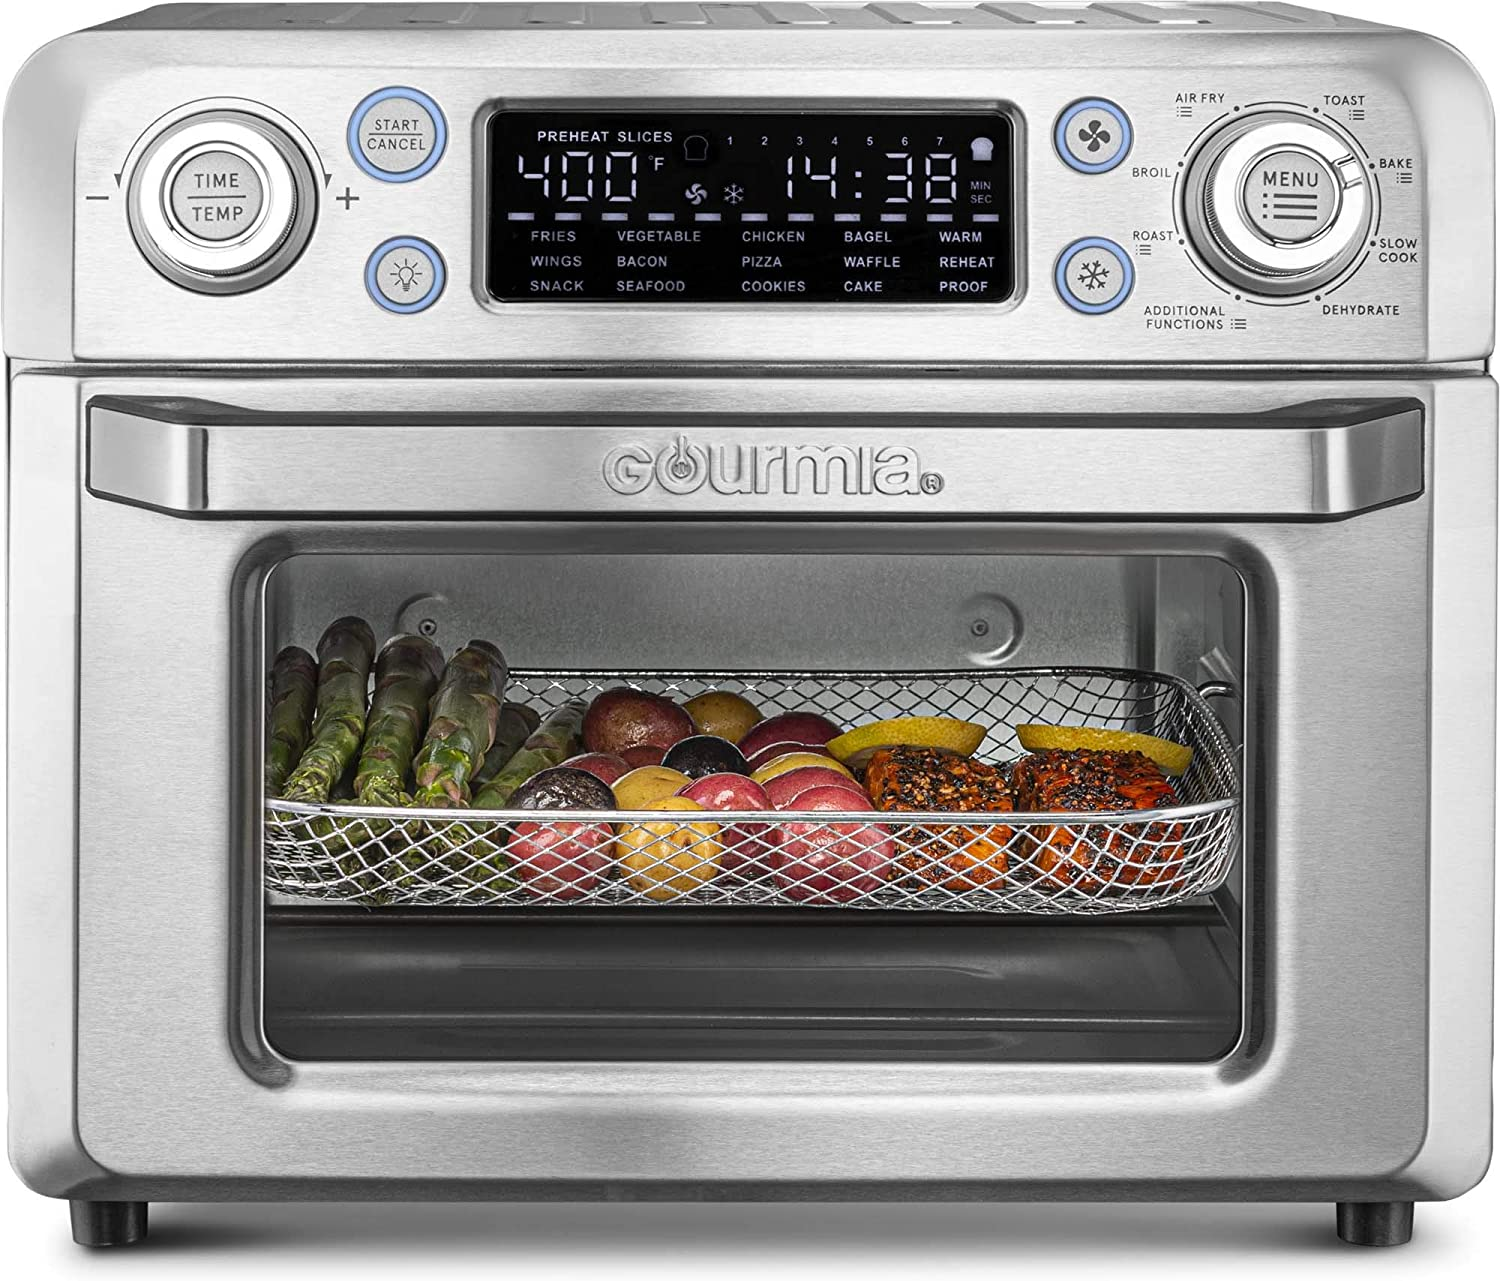 Gourmia GTF7650 24-in-1 Multi-function, Digital Stainless Steel Air Fryer Oven - 24 Cooking Presets with Convection Mode - Fry Basket, Oven Rack, Baking Pan & Crumb Tray, Includes Recipe Book